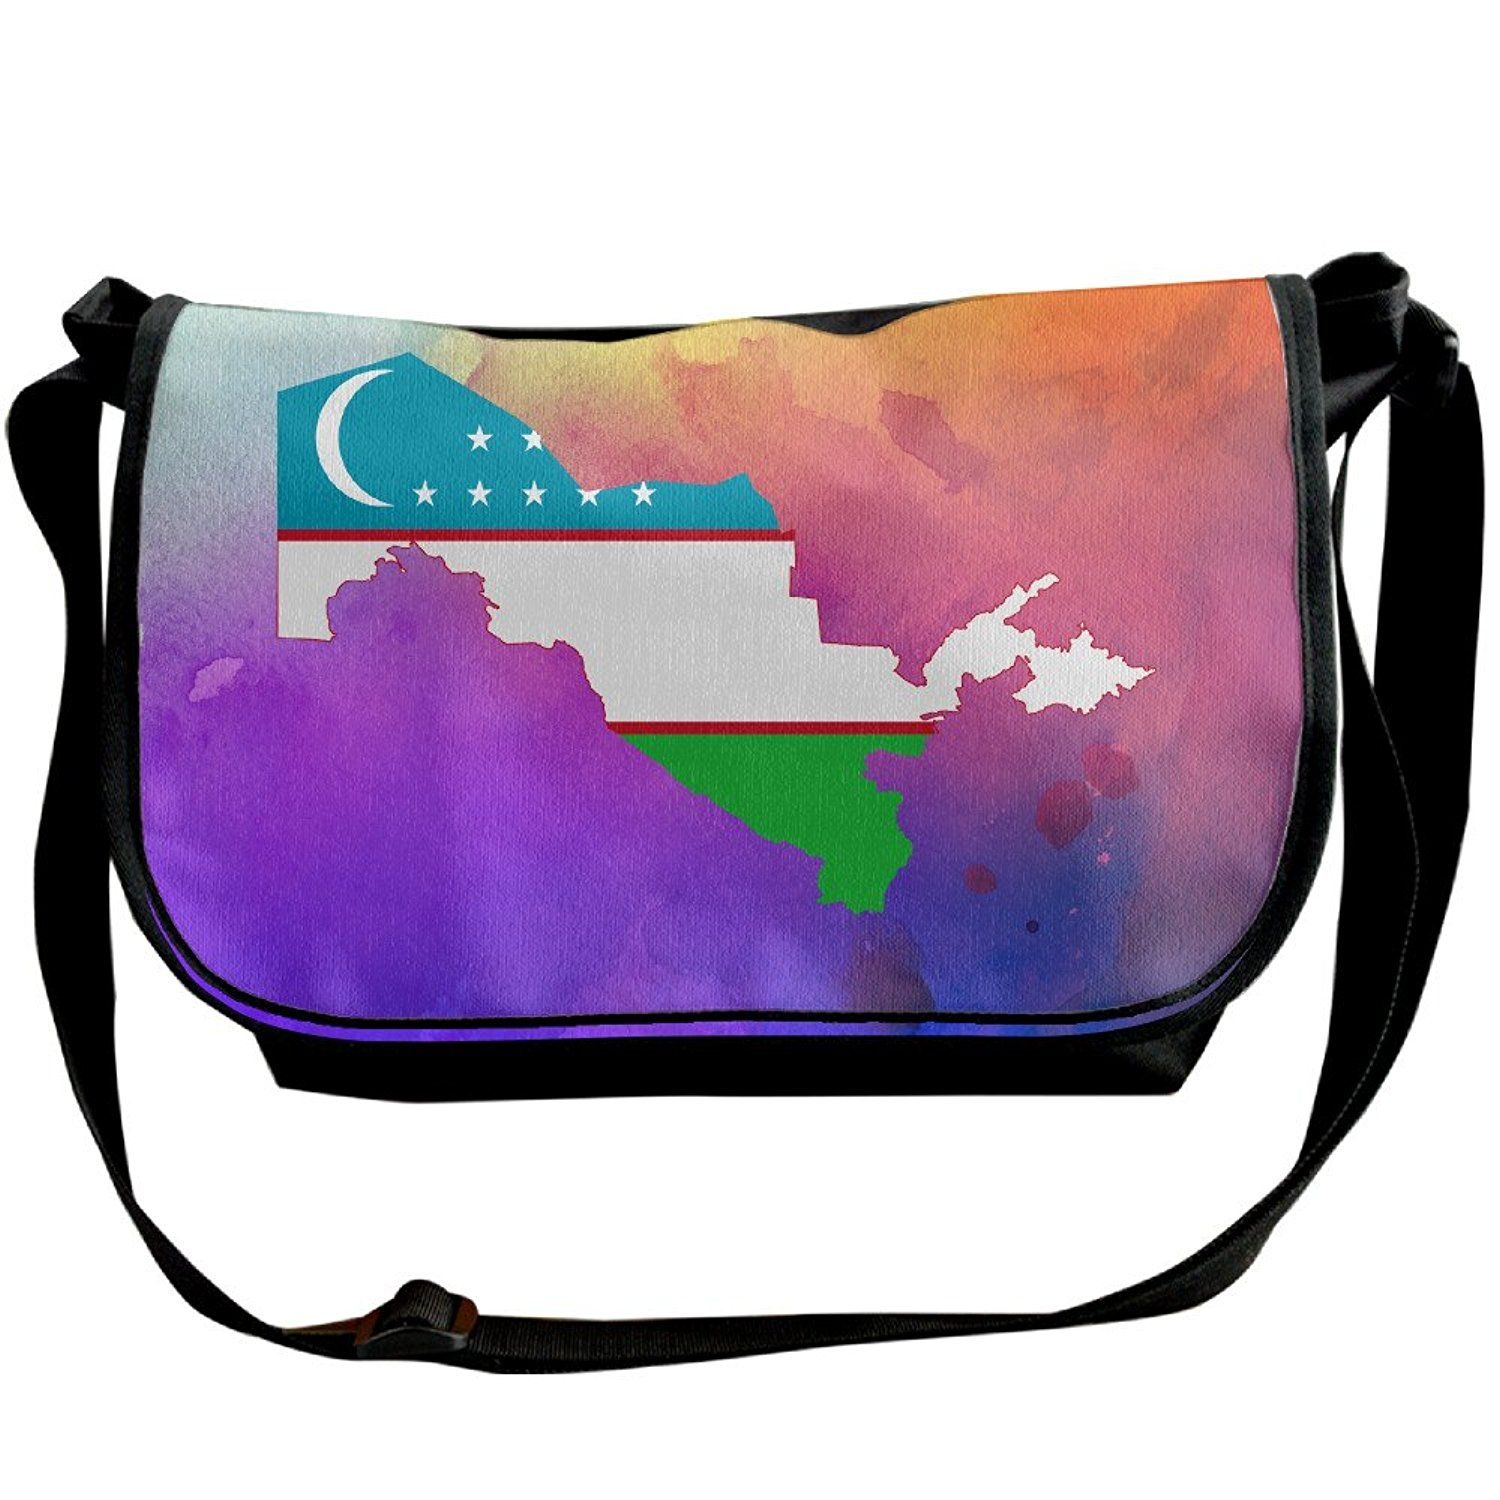 Flag And Map Of Uzbekistan Black Unisex Body Shoulder Sling Bag Messenger Bag Packbags >>> Check out this great product.